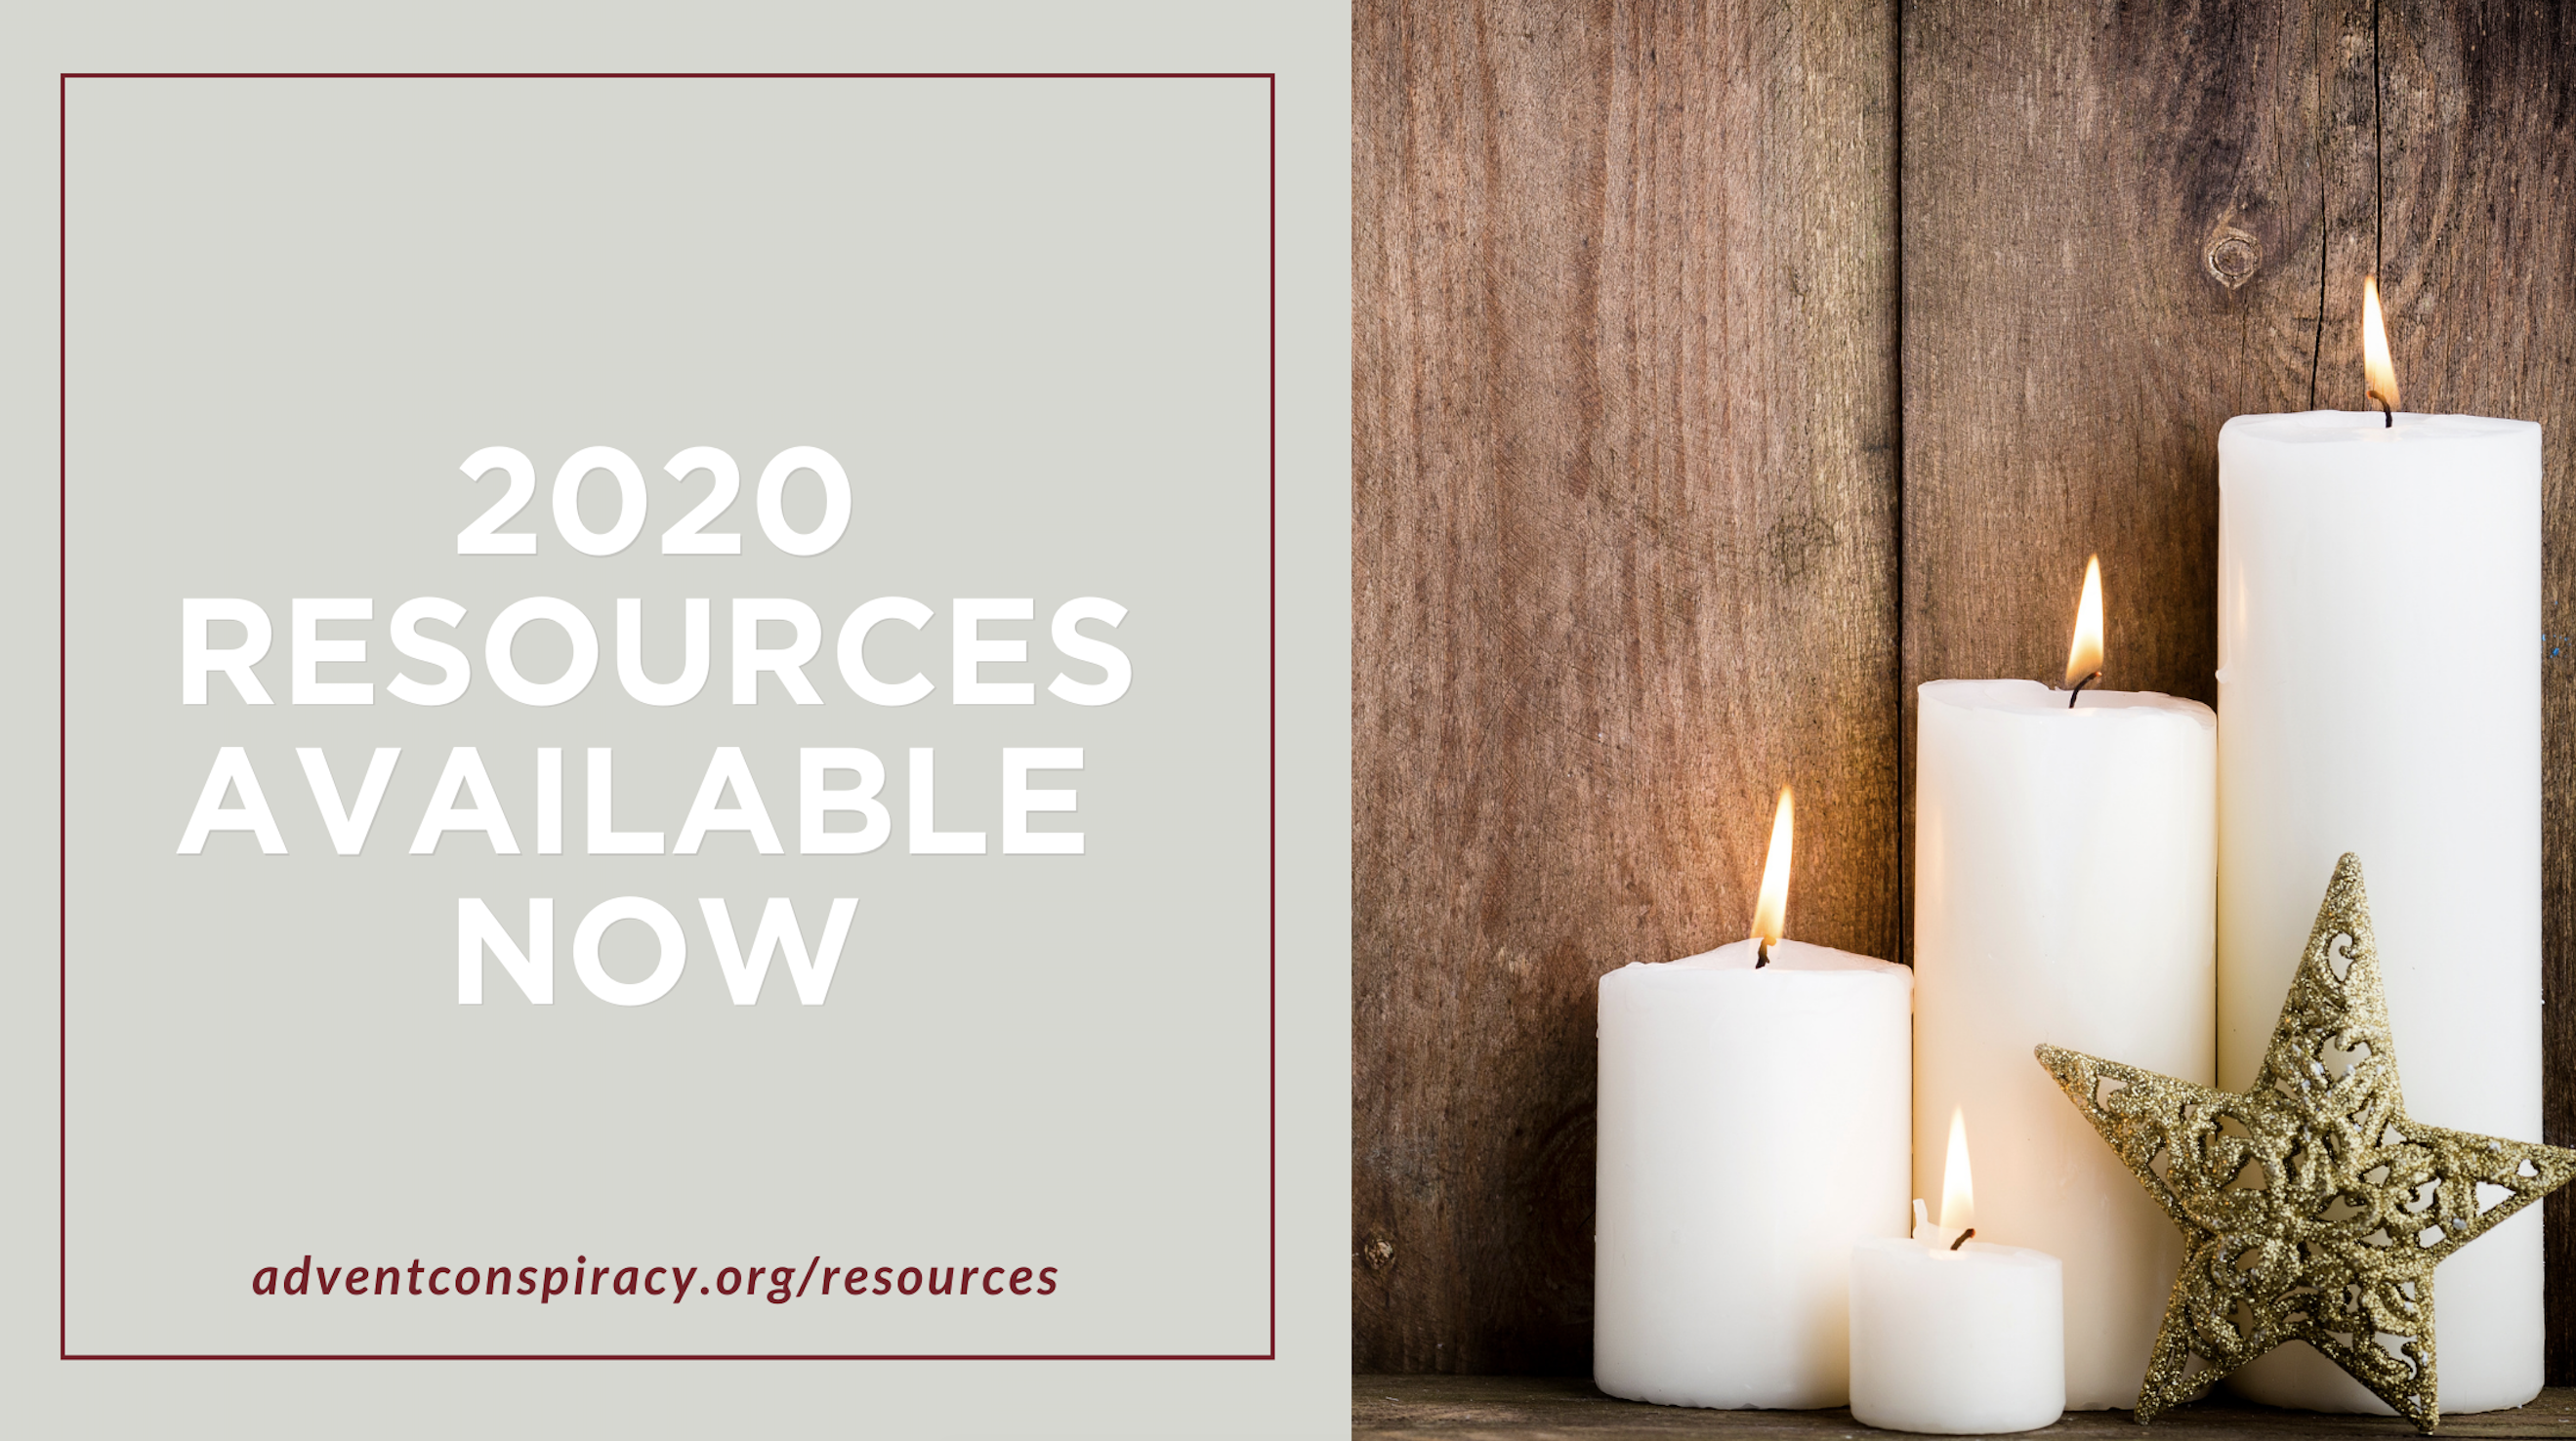 2020 Resources Banner